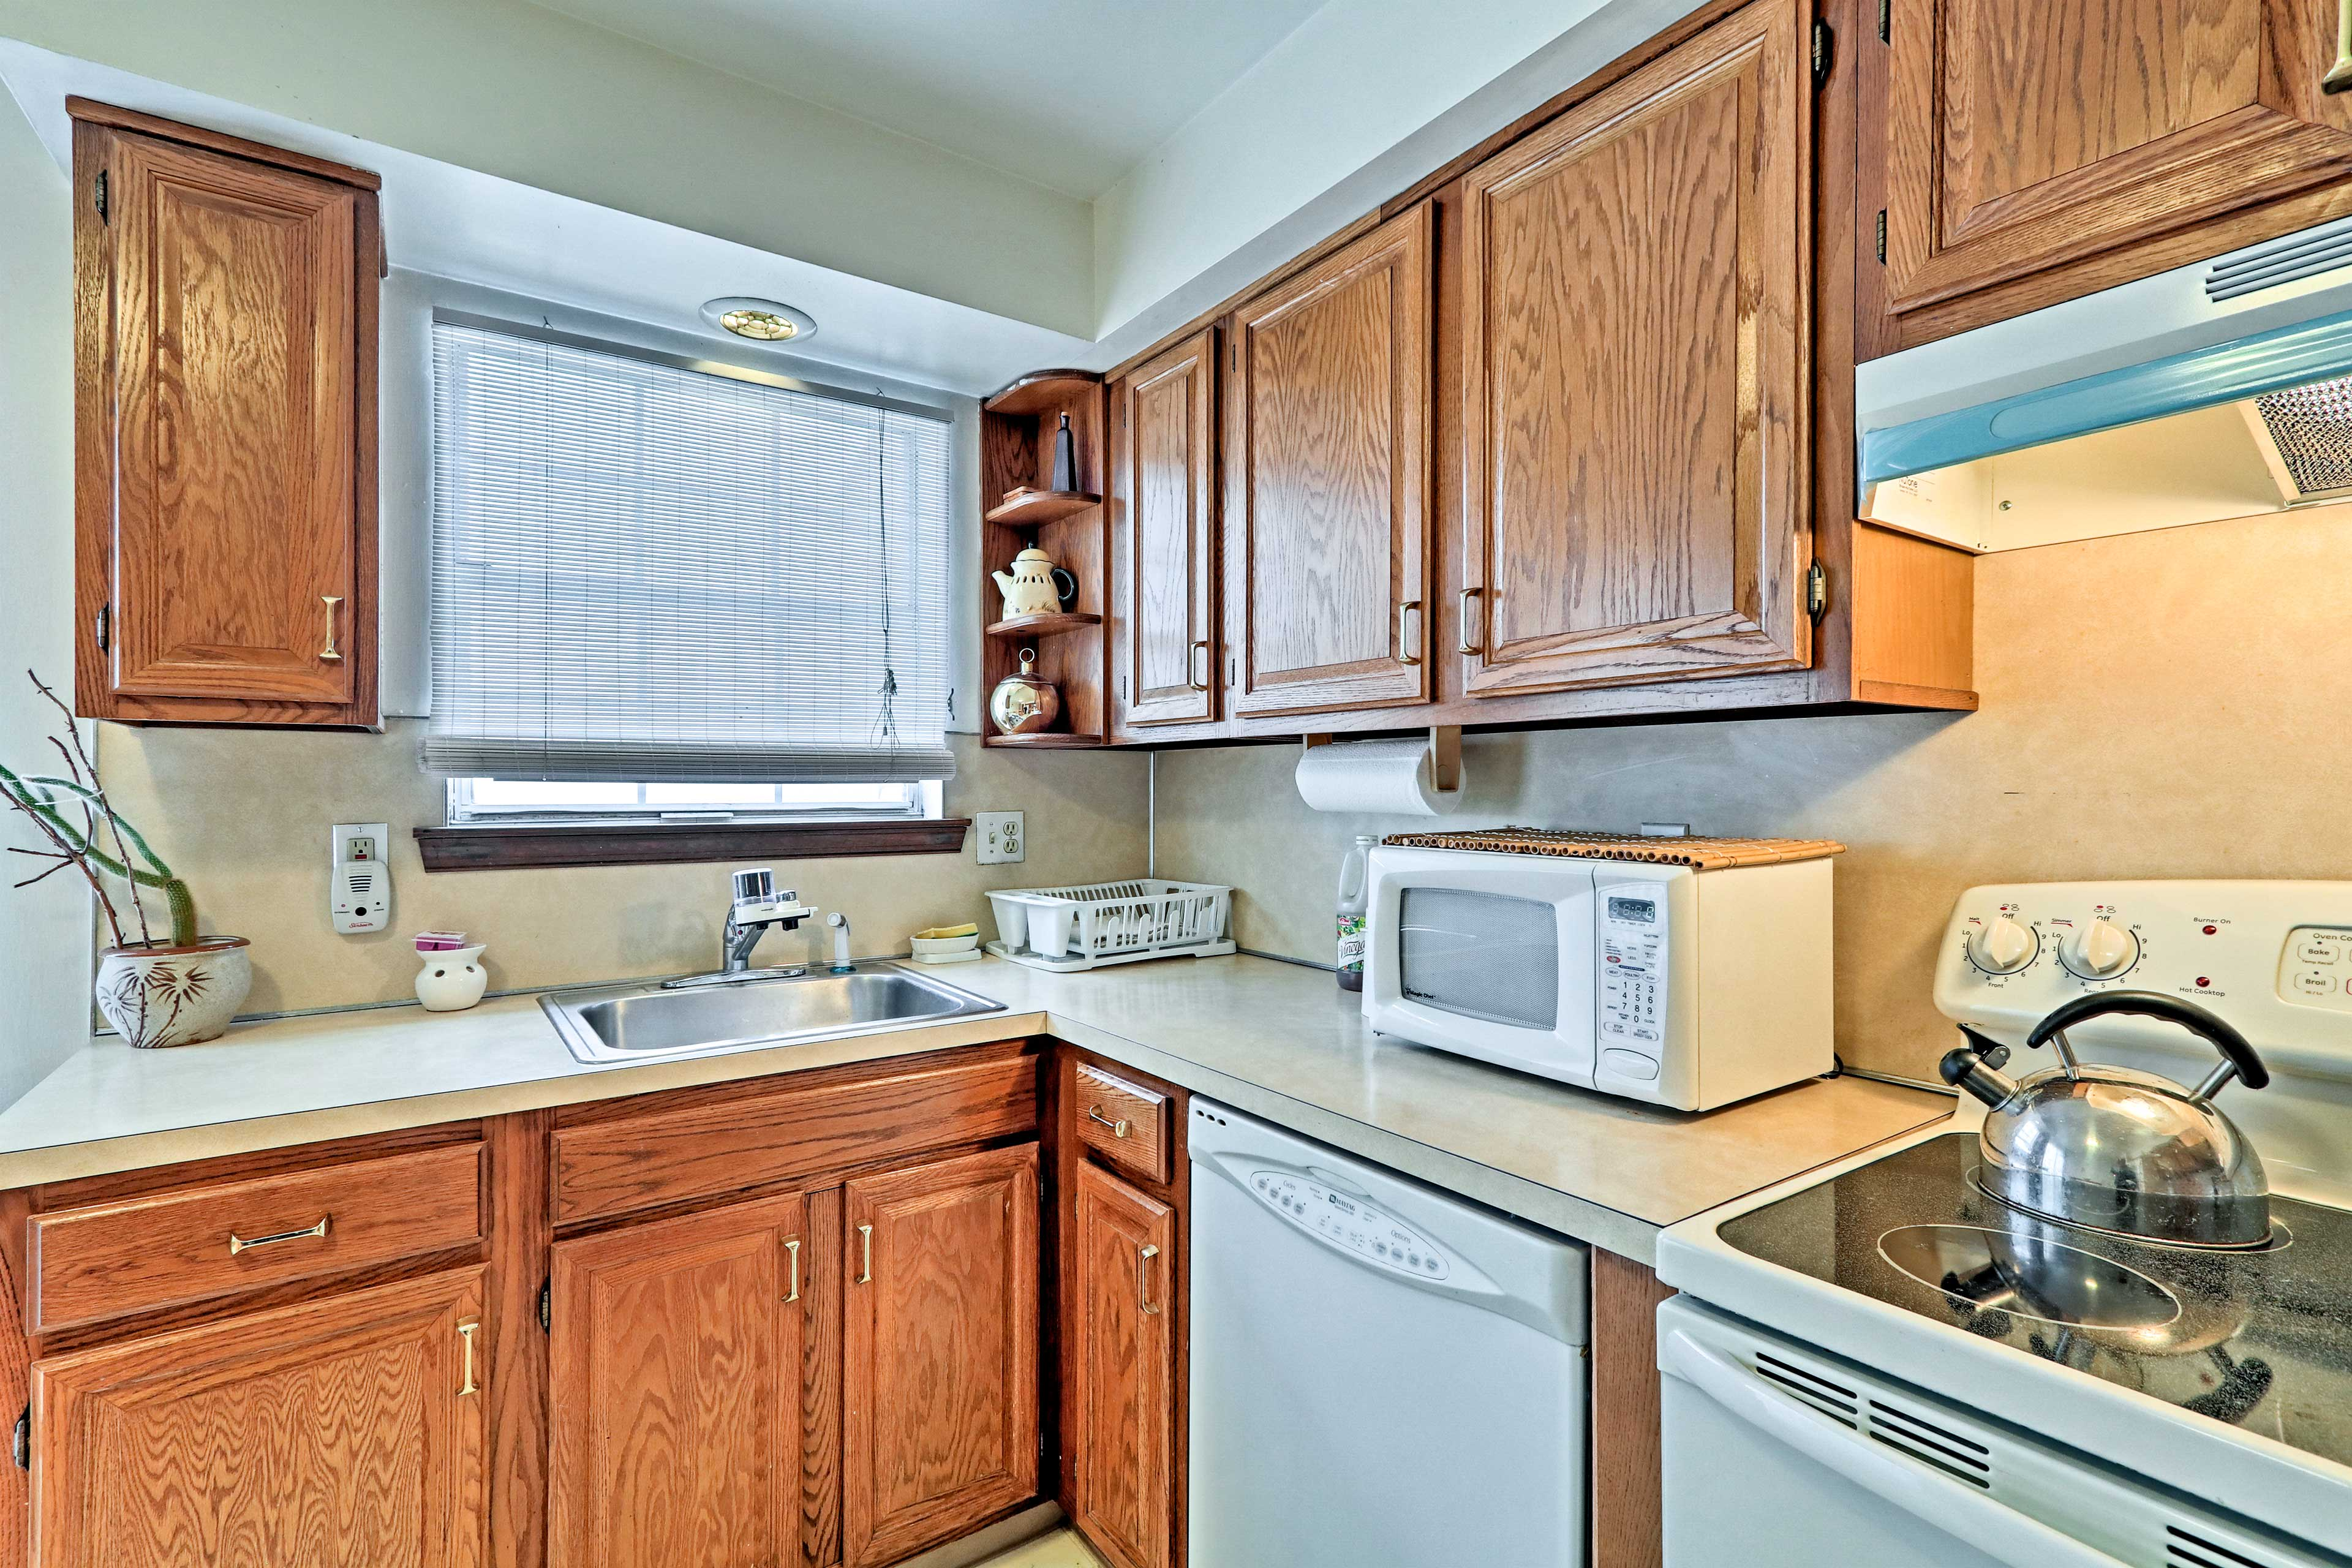 You'll have all the essential cooking appliances and utensils.